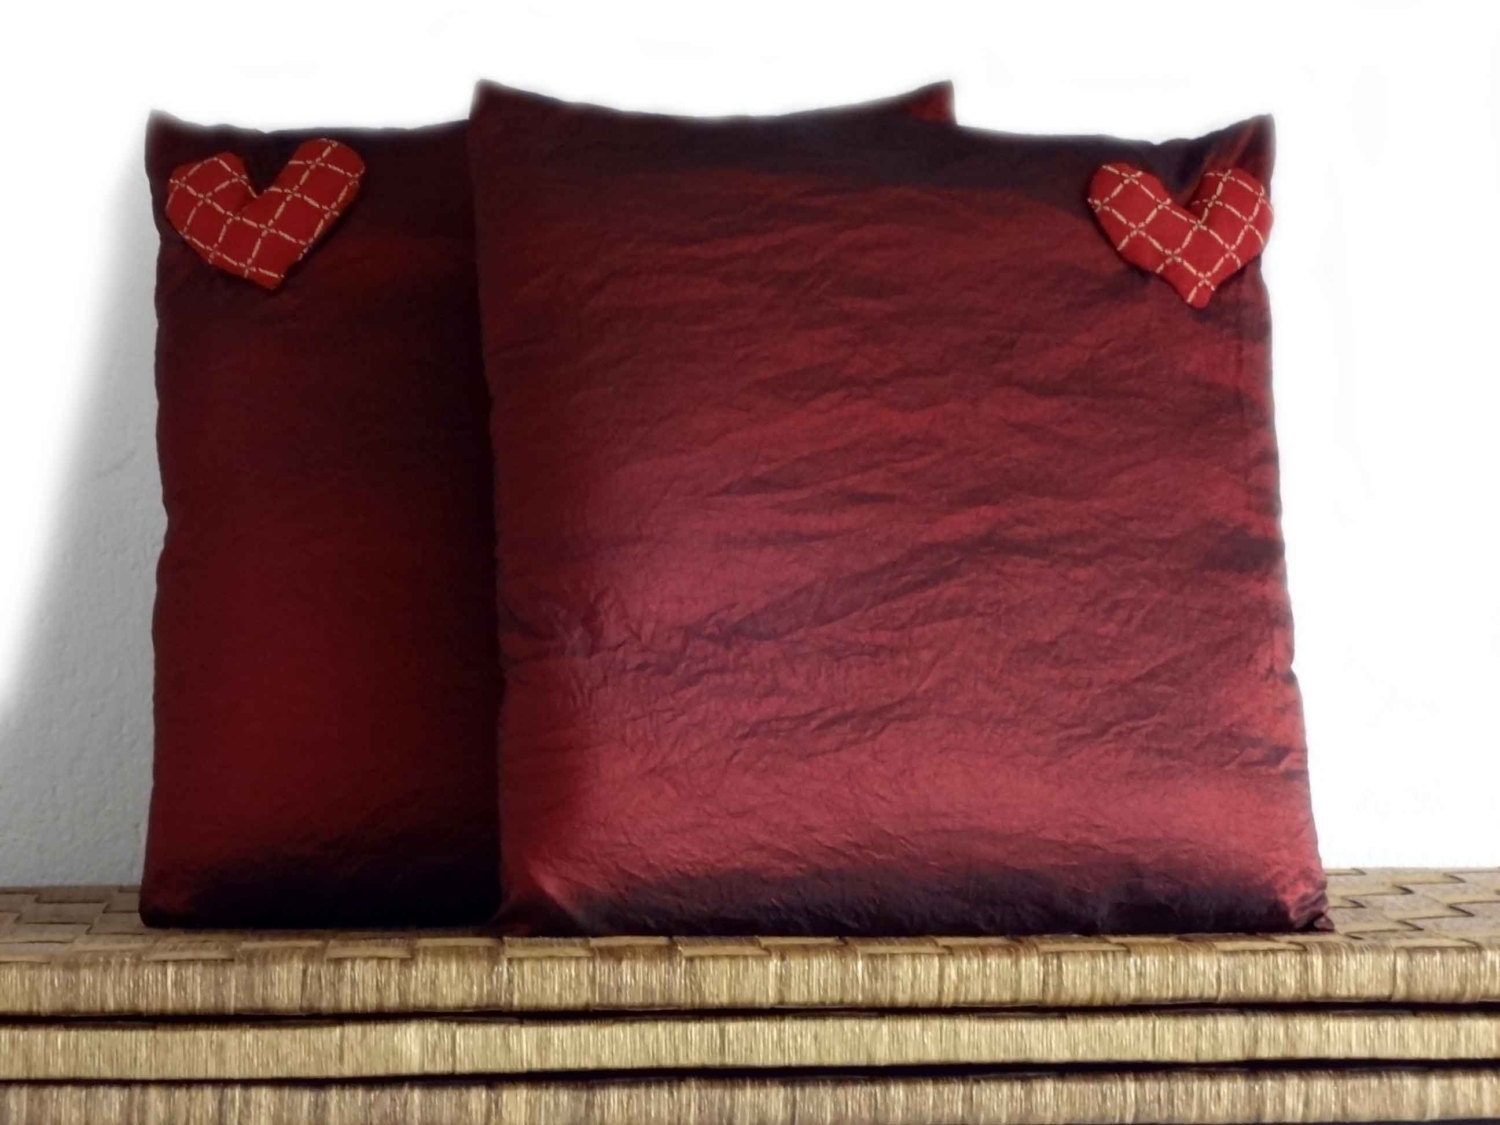 Burgundy Colored Throw Pillows : Decorative pillows burgundy cushions in elegant burgundy